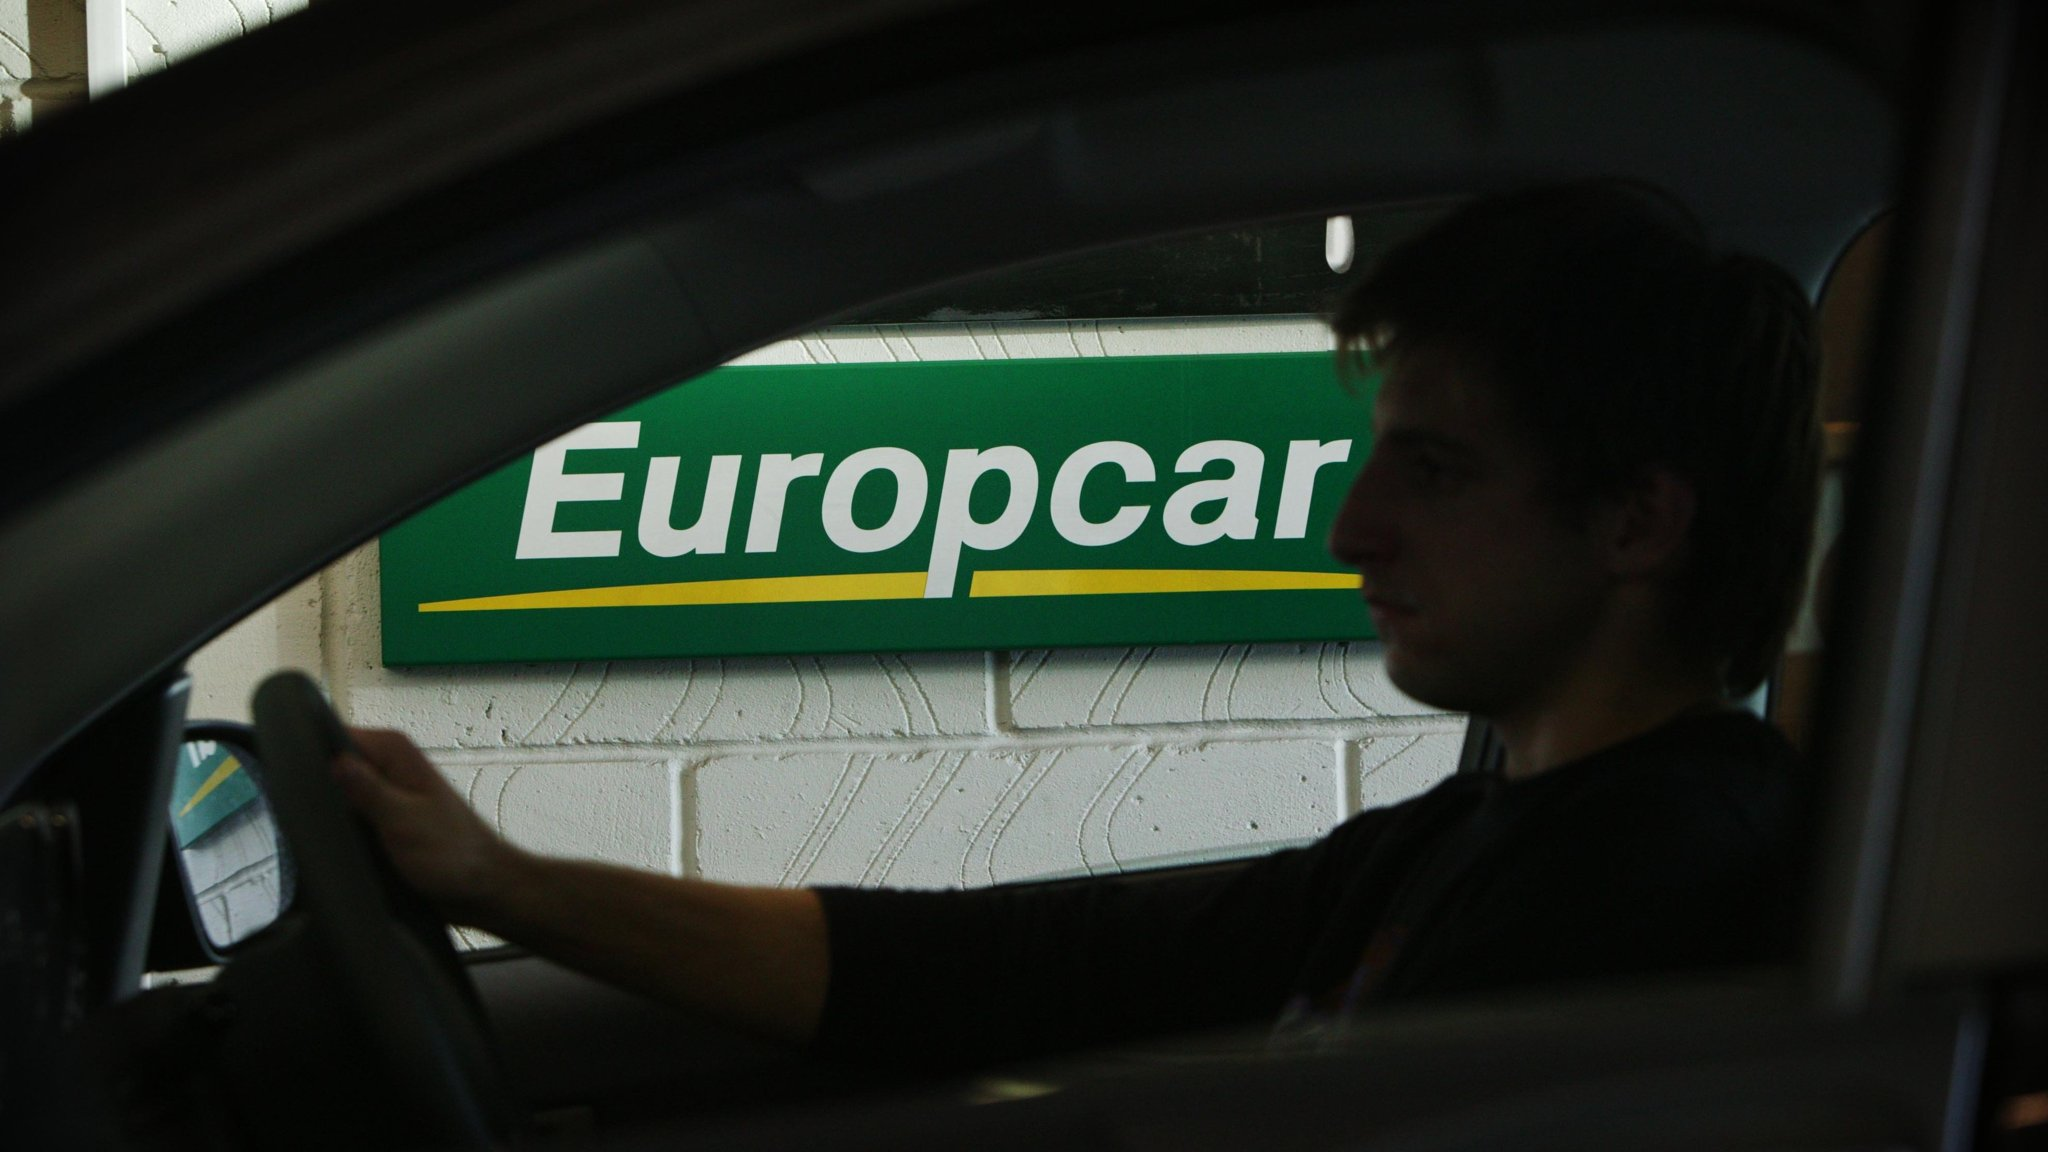 Europcar To Buy Irish Franchise As It Plans Acquisition Spree